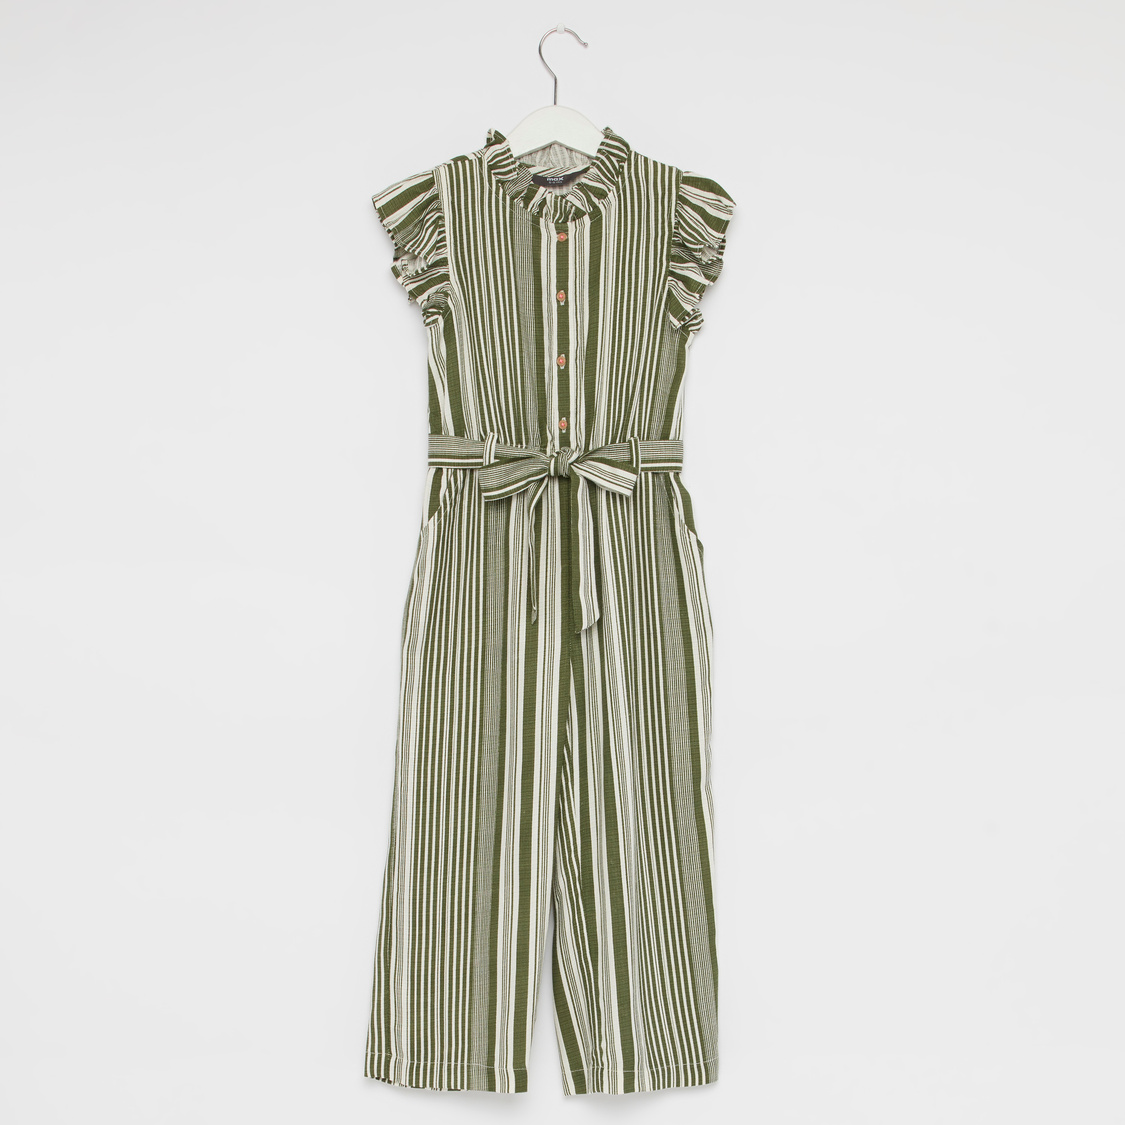 Stripe Round Neck Juumpsuit with Cap Sleeves and Ruffle Detail